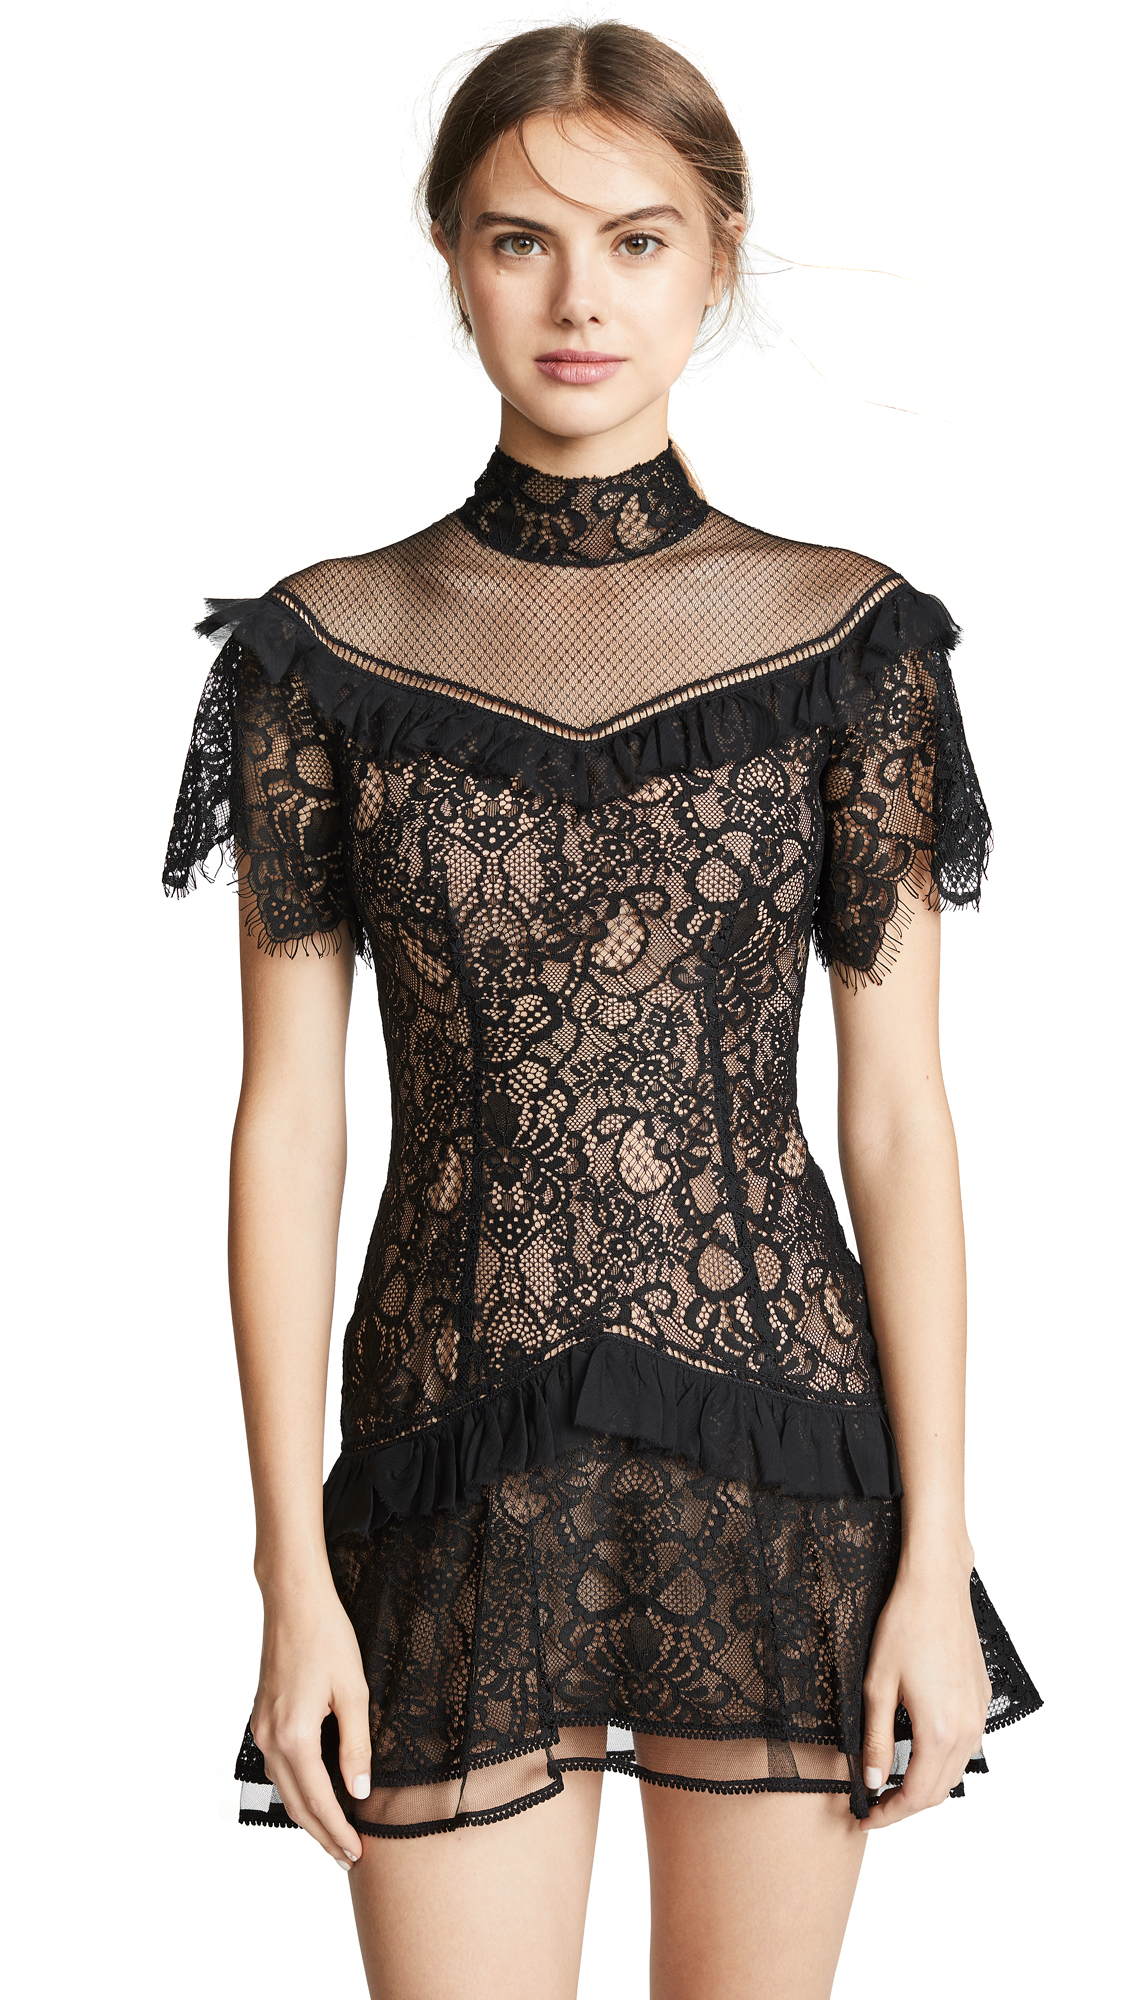 Jonathan Simkhai Mixed Lace Mockneck Minidress